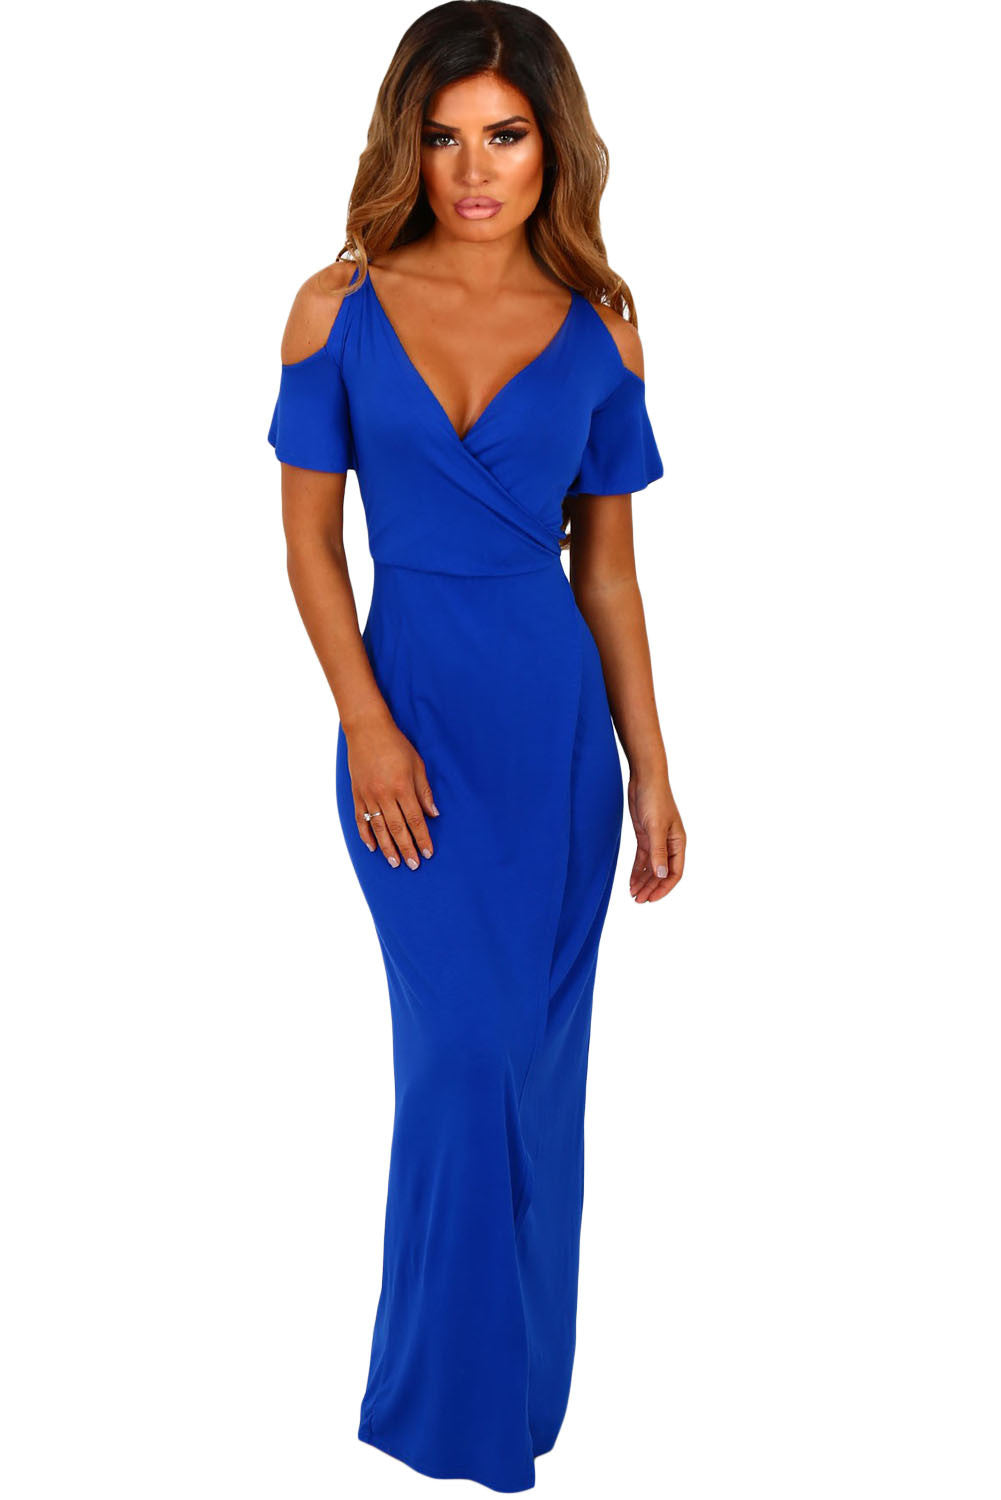 Cobalt Blue Cold Shoulder Long Jersey Dress LAVELIQ